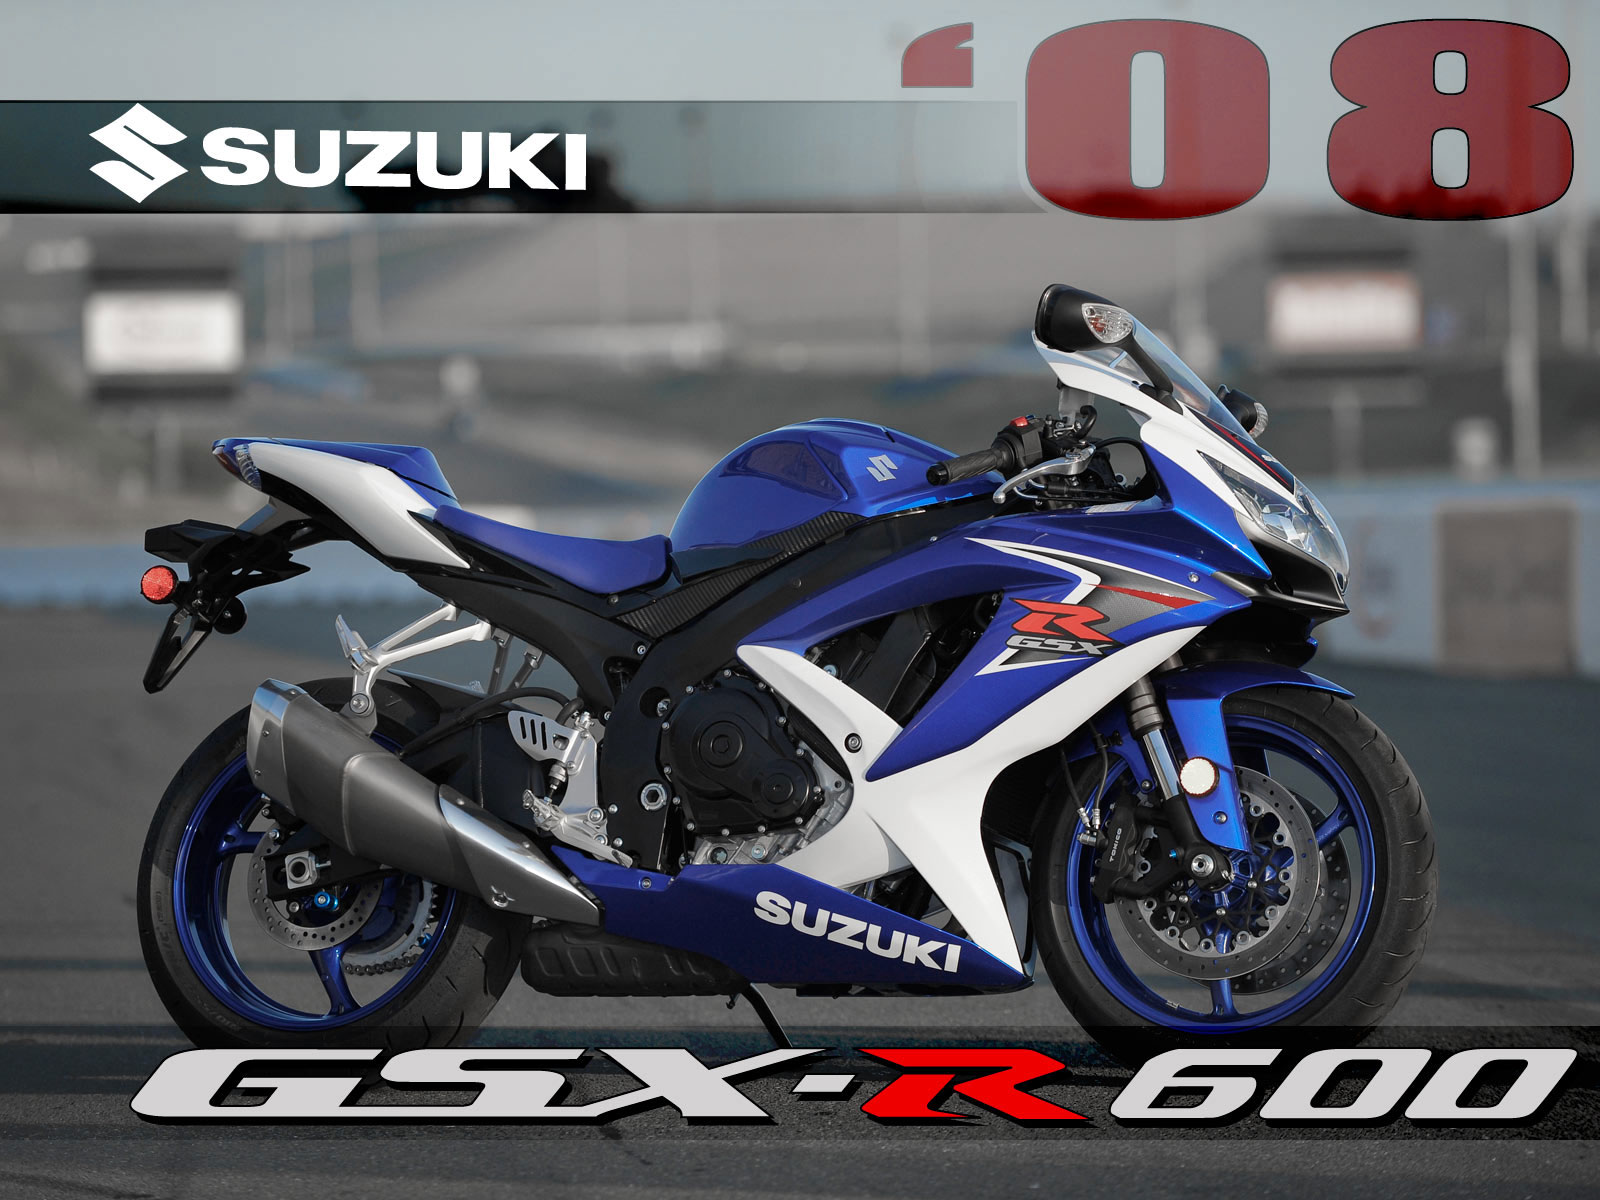 Admirable 2008 Suzuki Gsr 600 Pic 7 Onlymotorbikes Com Caraccident5 Cool Chair Designs And Ideas Caraccident5Info